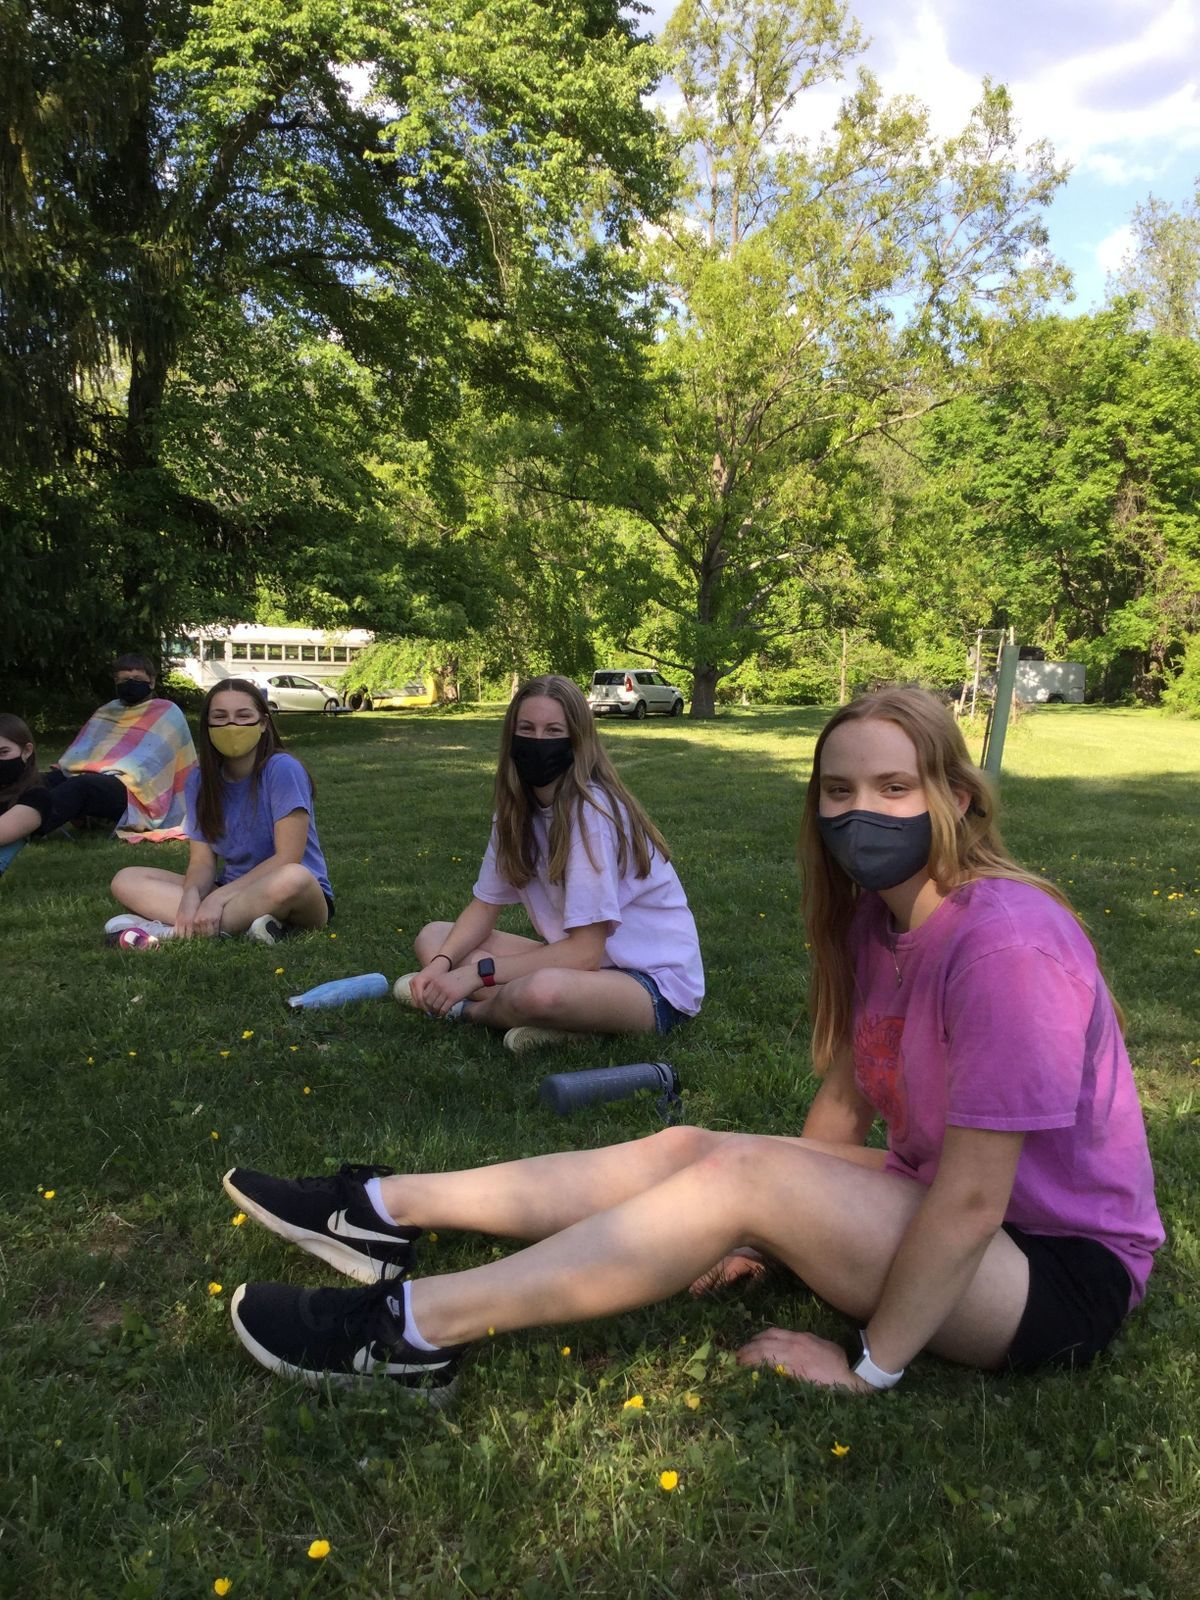 3 YFs sit smiling with masks on